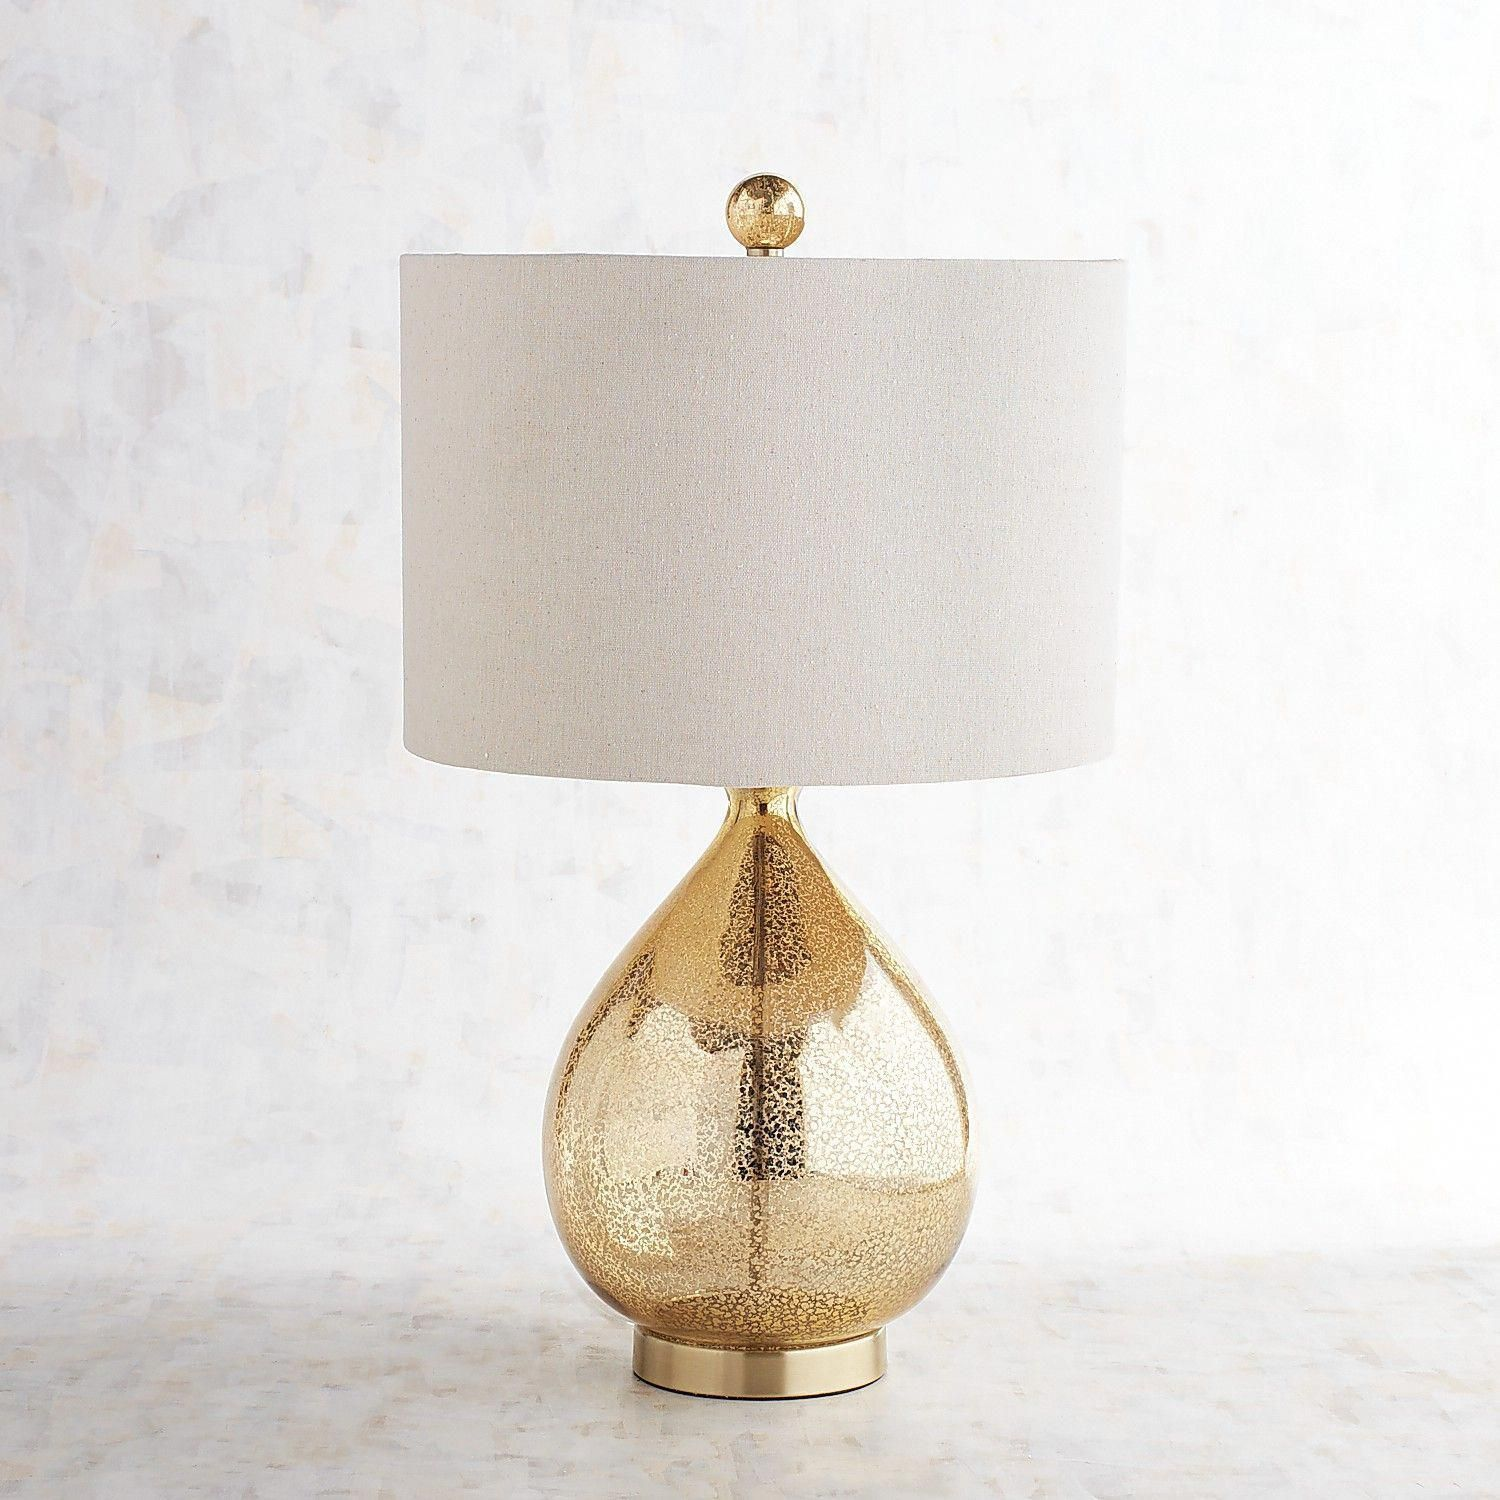 Golden teardrop luxe table lamp pier 1 imports rusticlamp